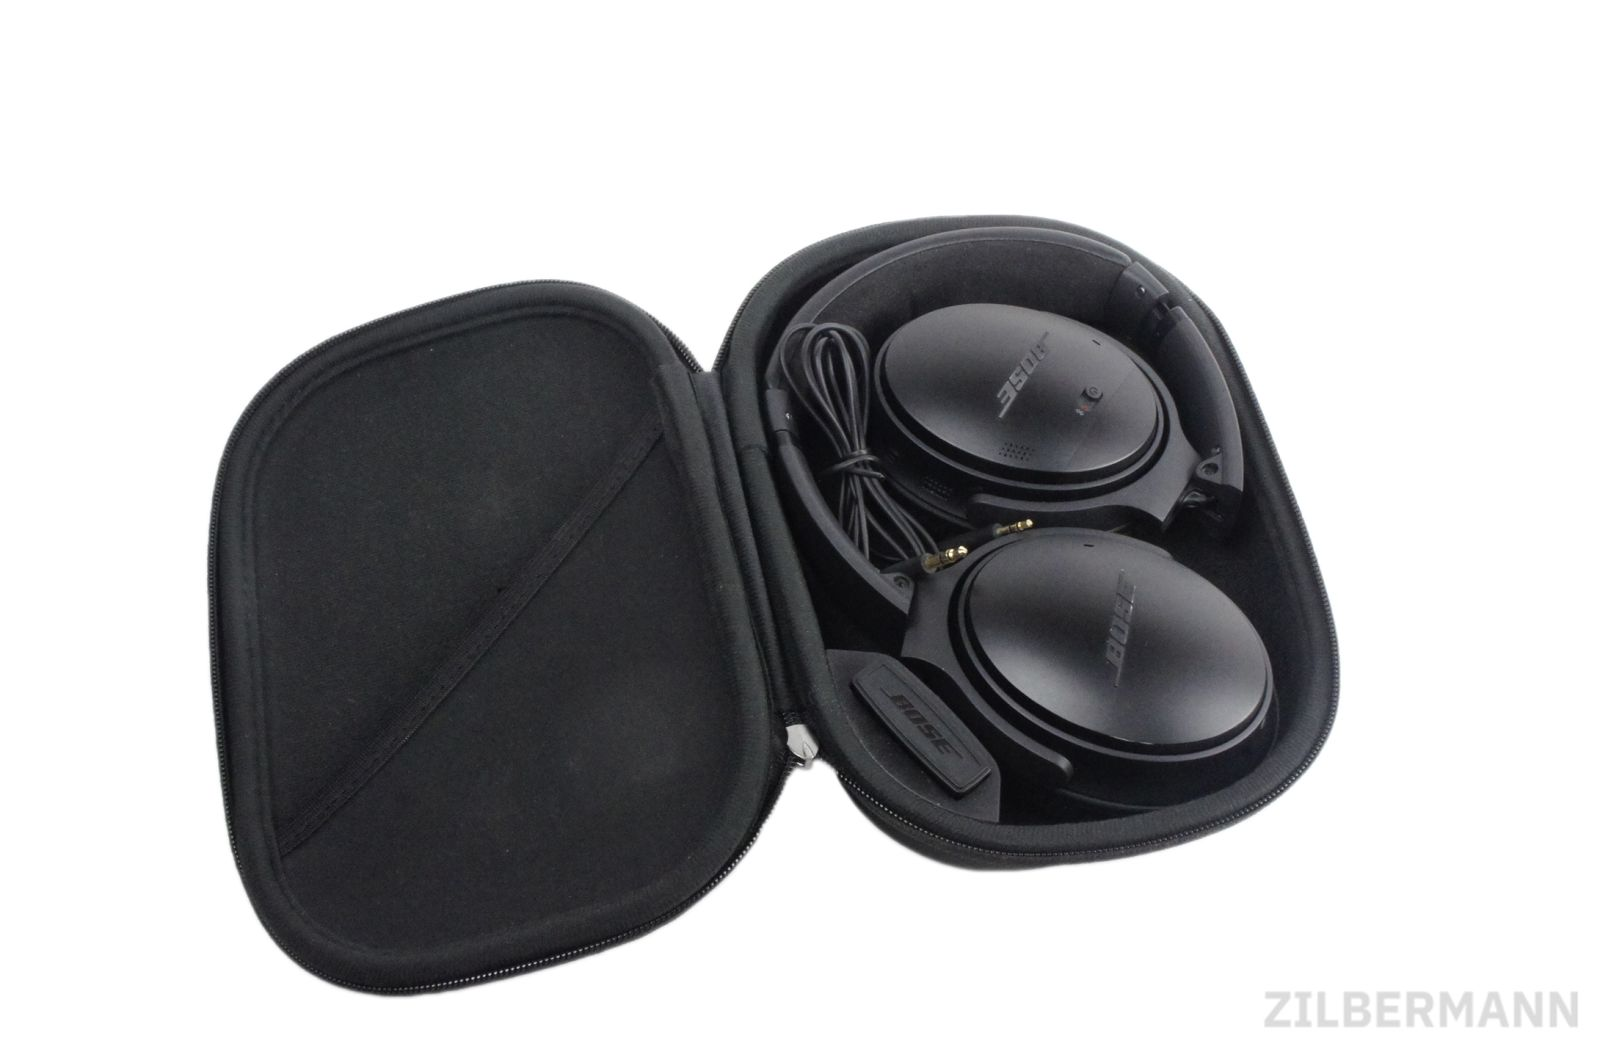 Bose_QuietComfort_35_QC_35_Kopfhorer_09